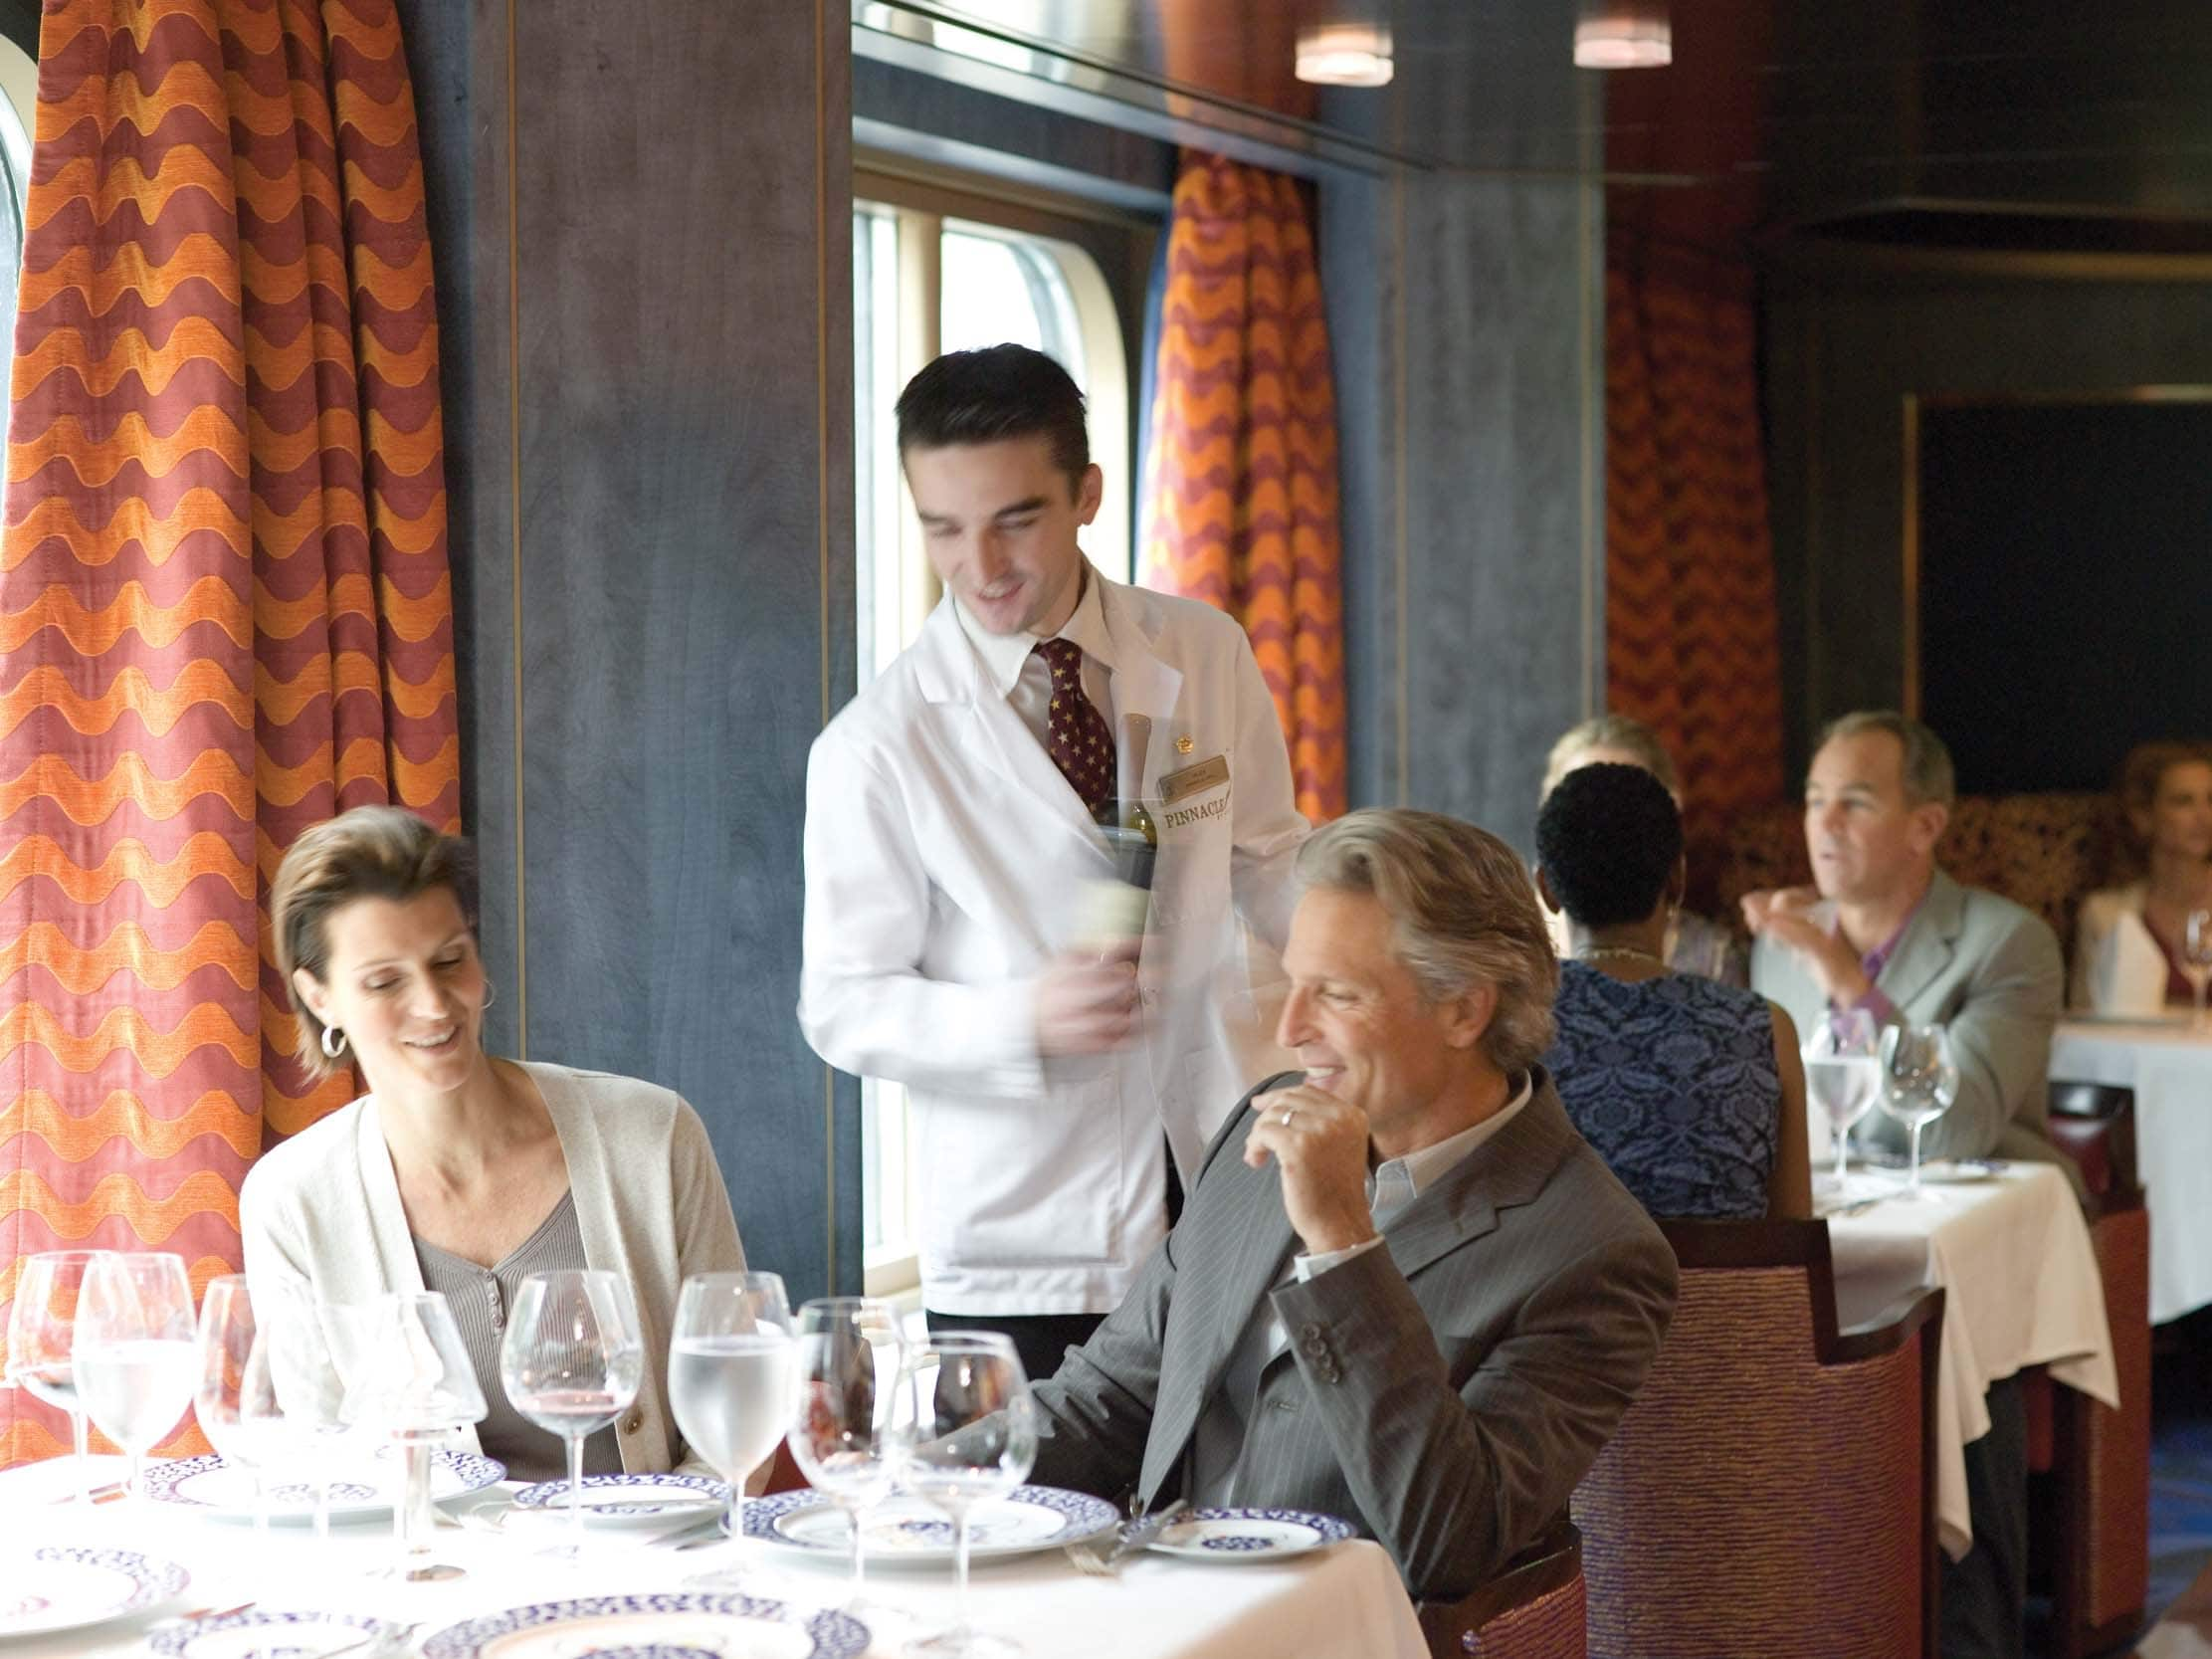 「dining holland america」的圖片搜尋結果